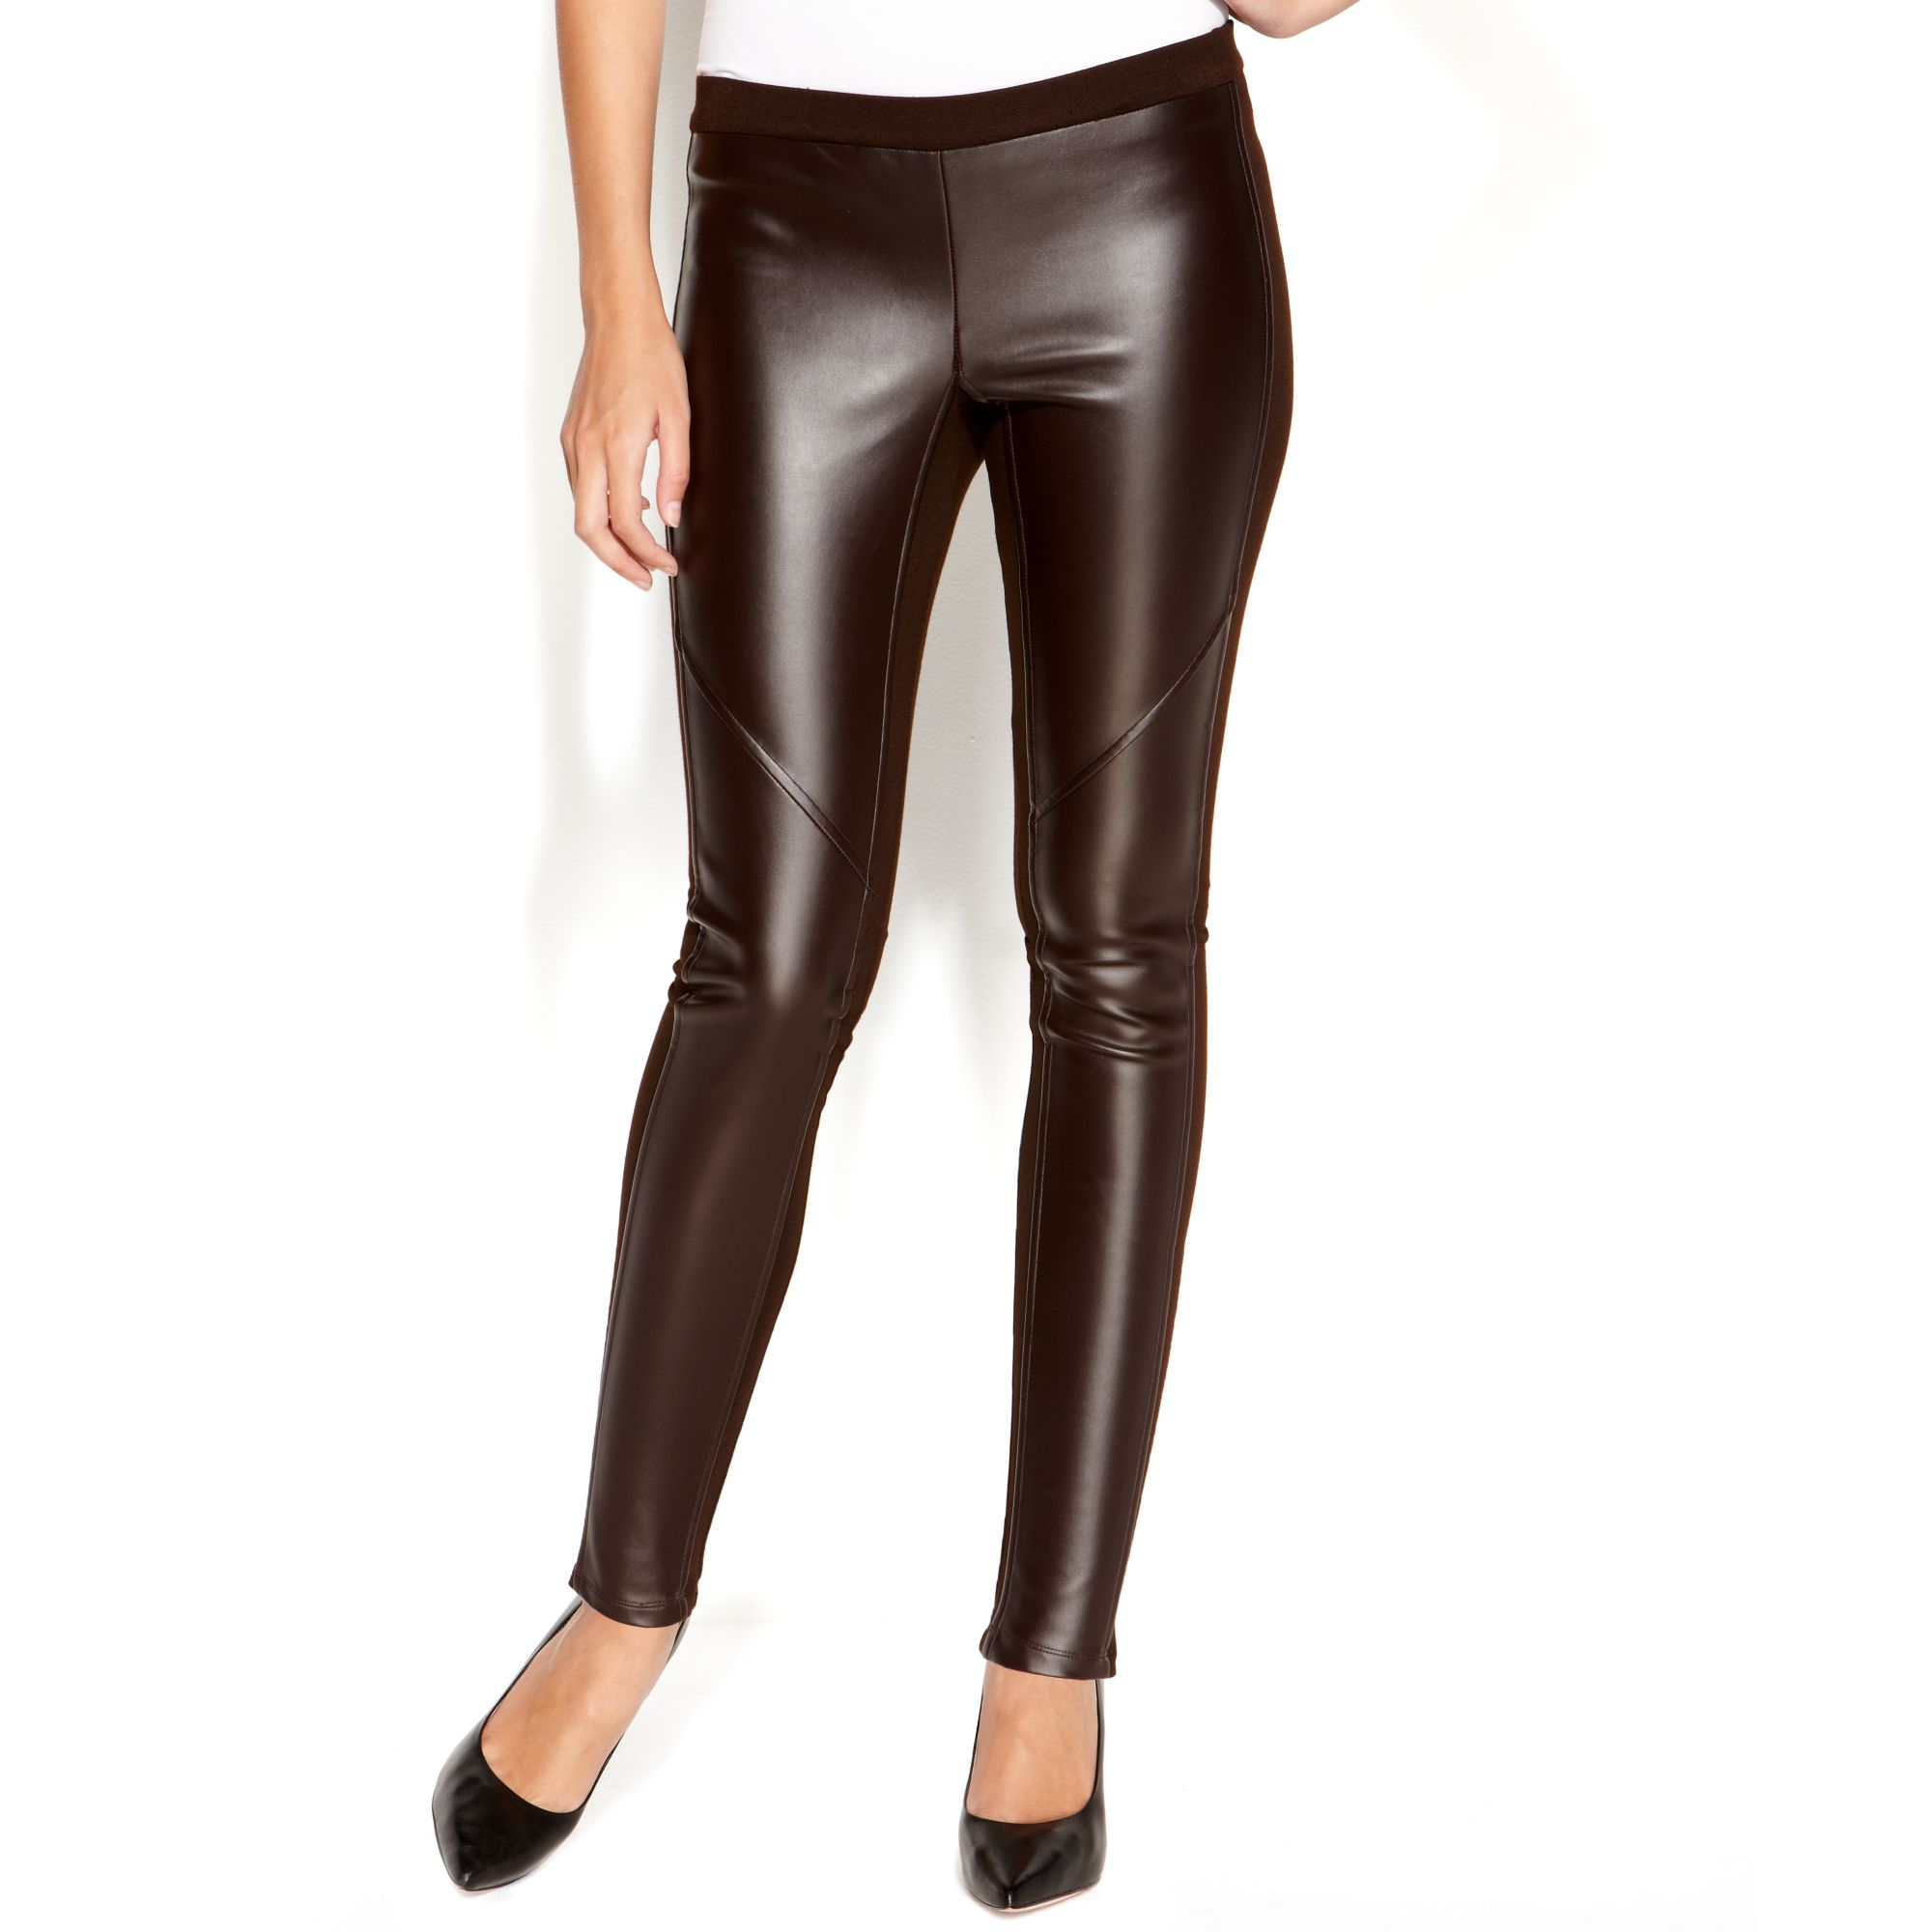 0d38eb681543b Gallery. Previously sold at: Macy's · Women's Faux Leather Pants ...